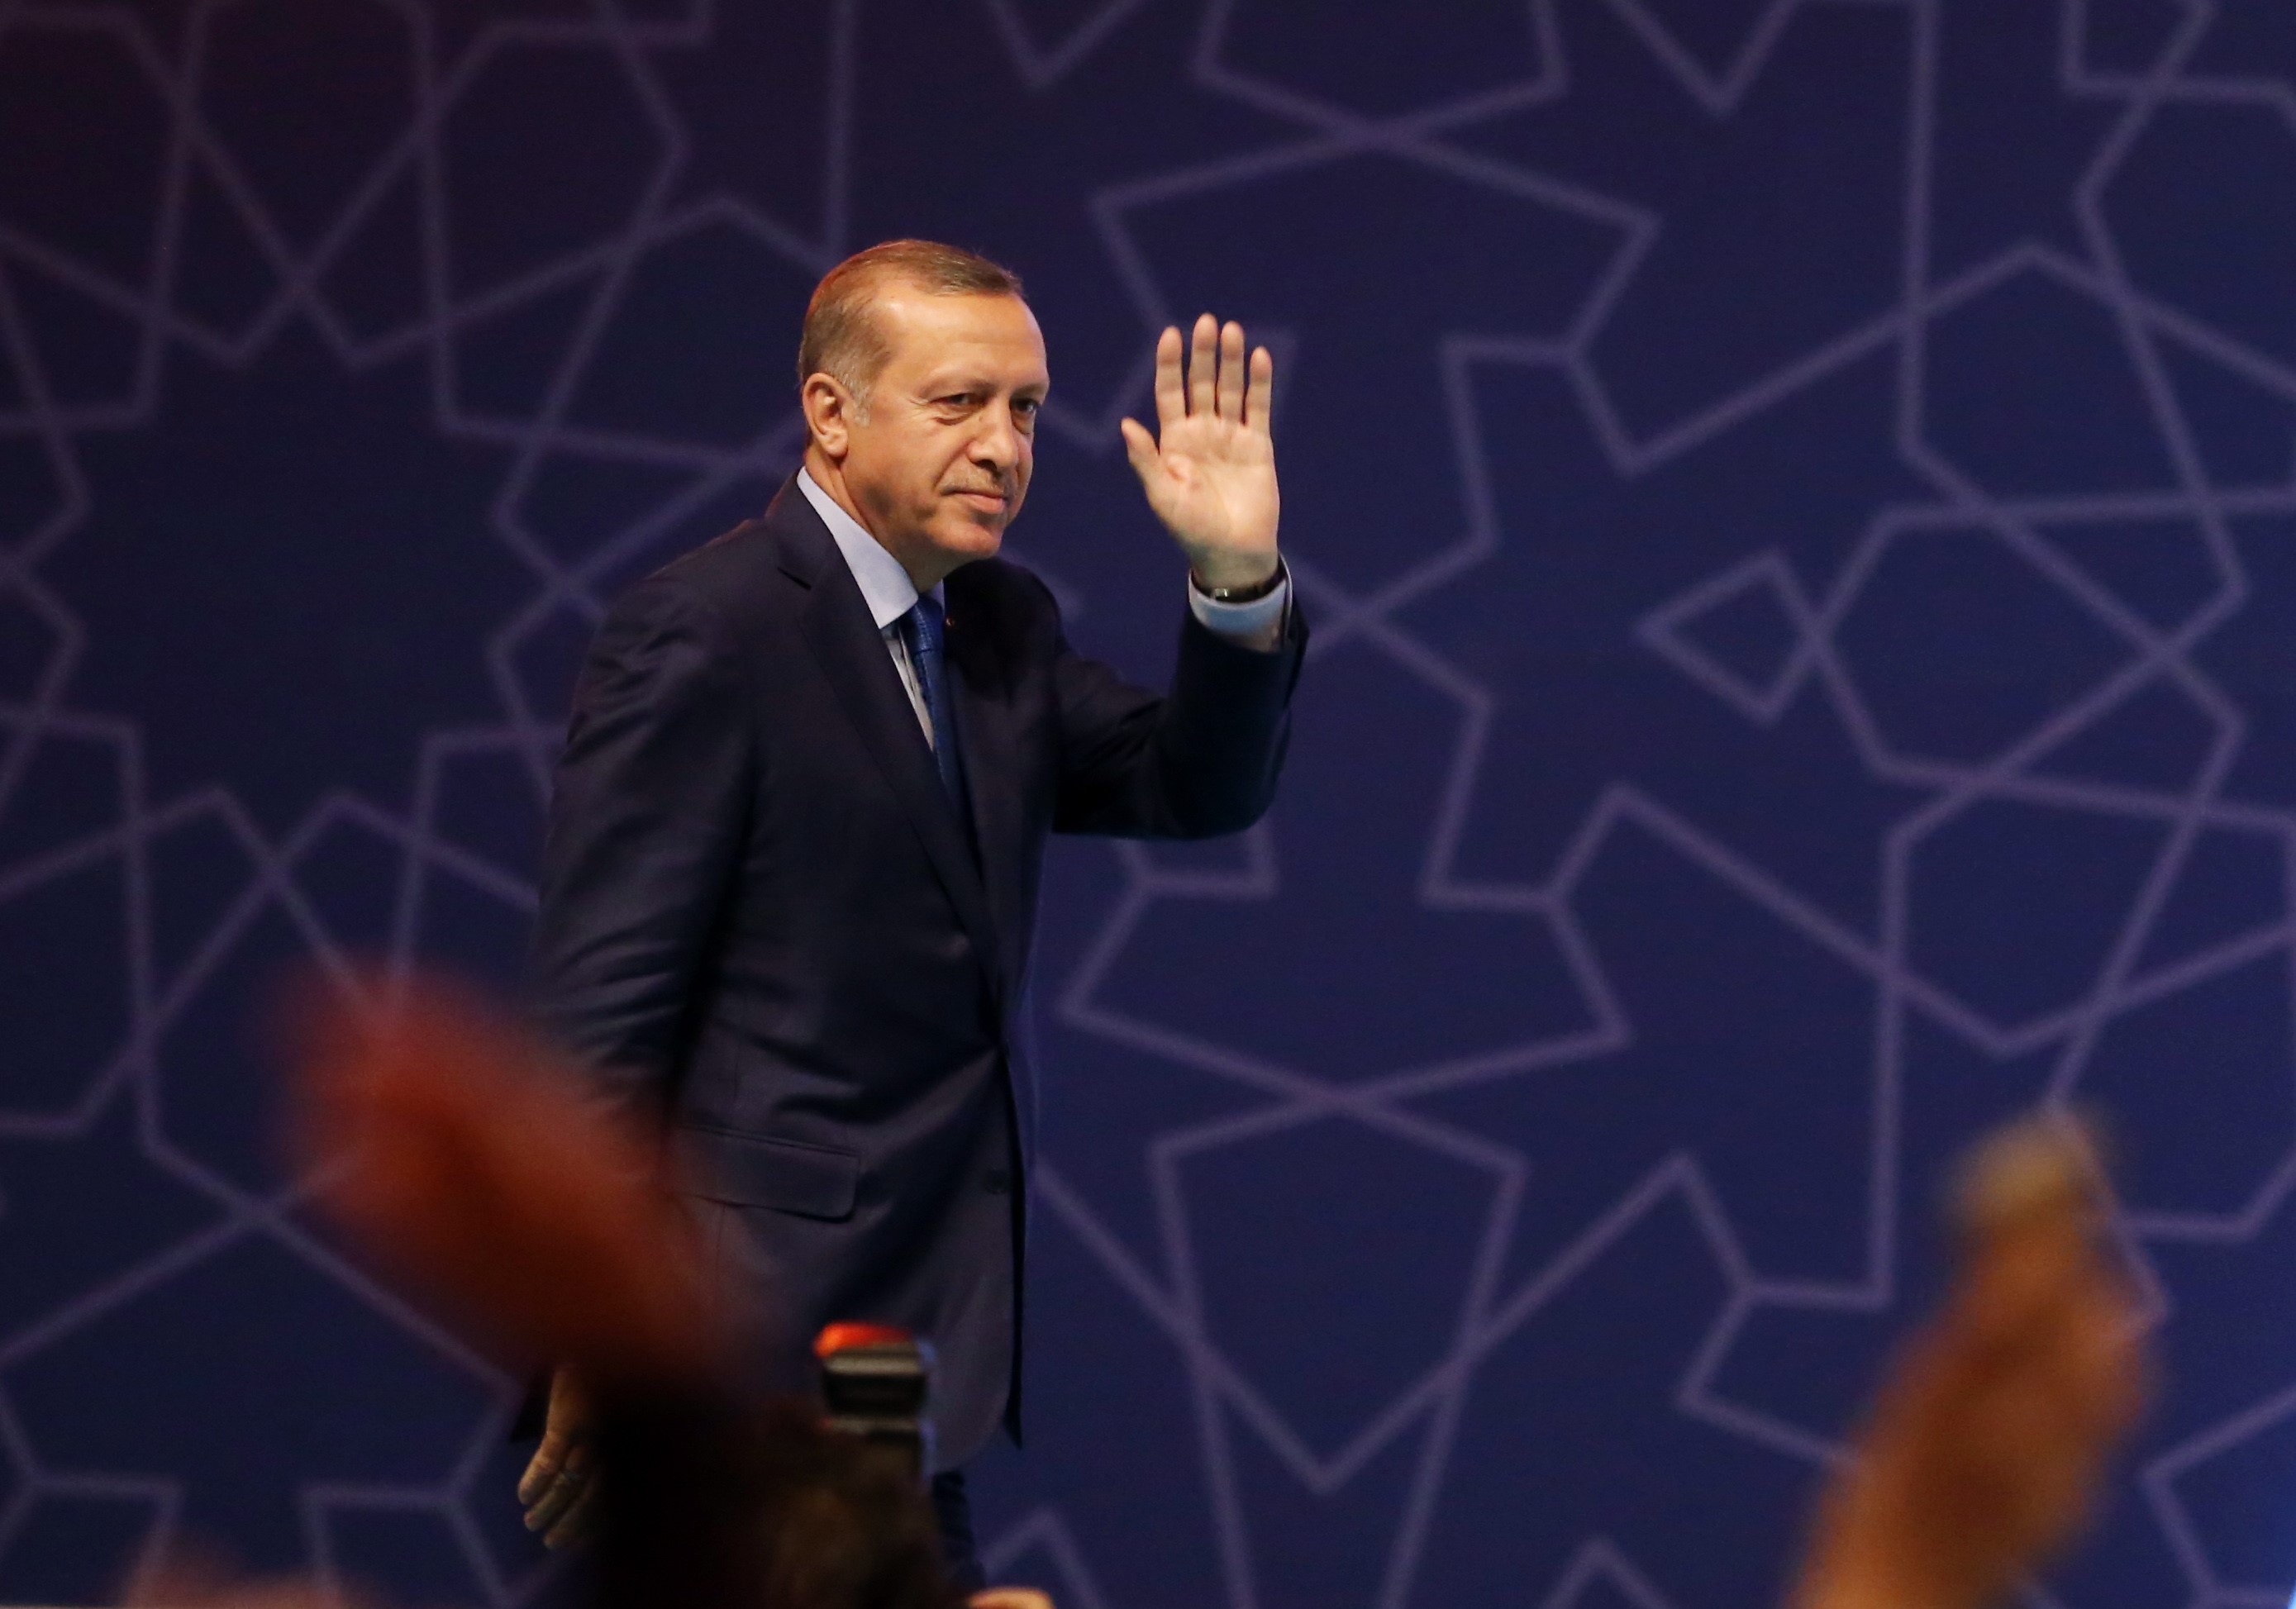 Turkish President Recep Tayyip Erdogan salutes the audience during a graduation ceremony of Fatih Sultan Mehmet University at Halic Congress Center in Istanbul on June 22, 2016